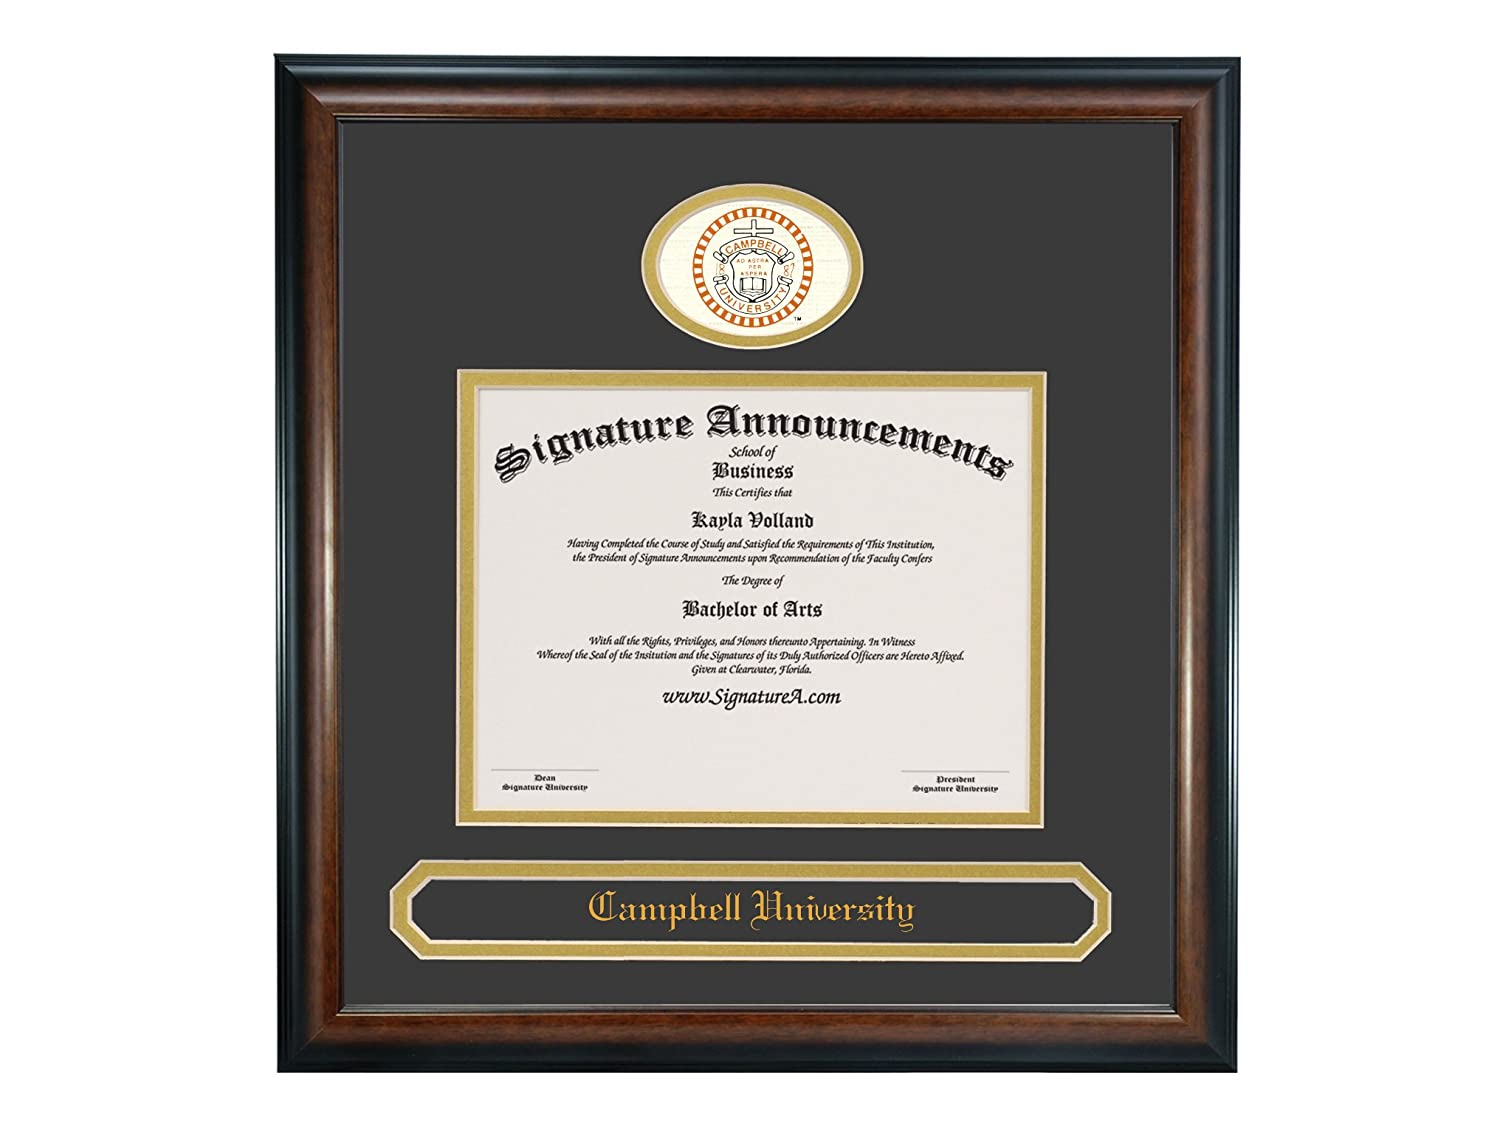 Sculpted Foil Seal /& Name Graduation Diploma Frame 20 x 20 Matte Mahogany Signature Announcements Campbell-University Undergraduate